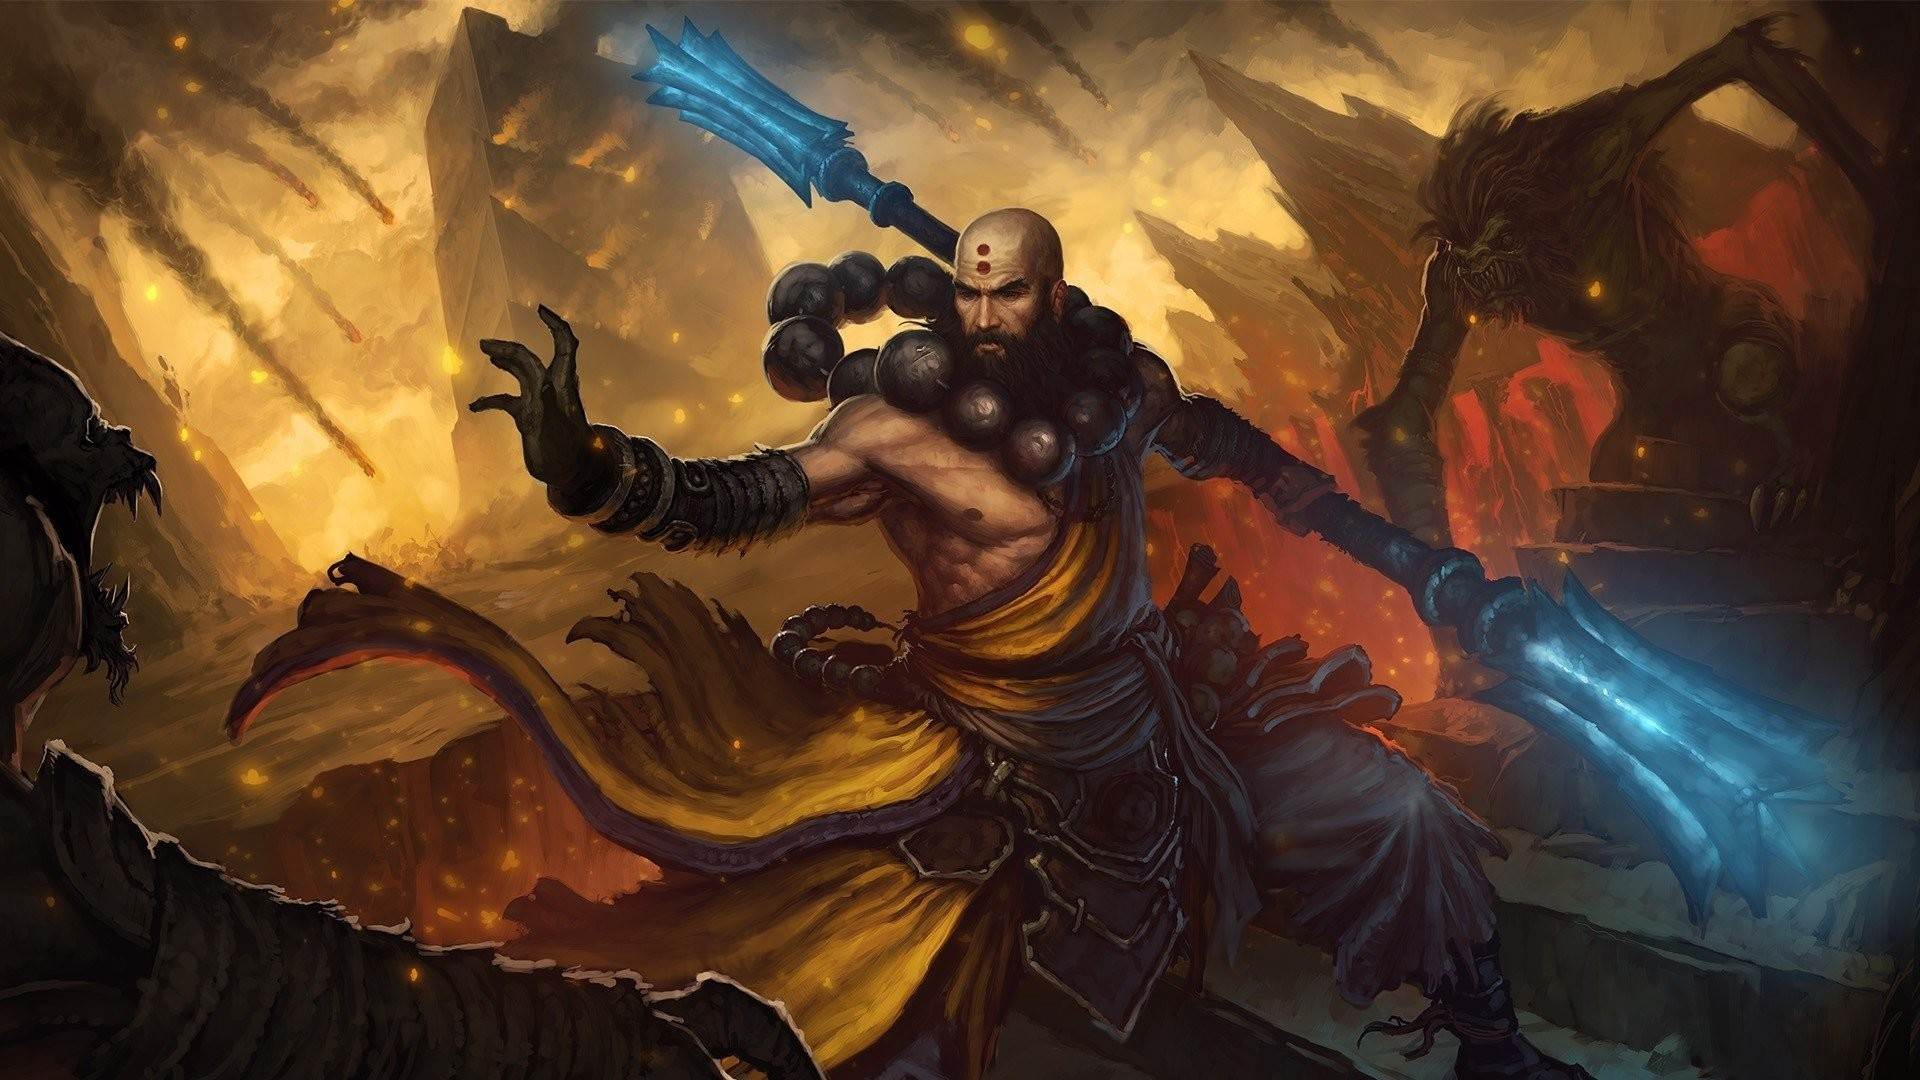 1920x1080, Fire Wizard Wallpapers High Definition   - Diablo 3 Monk - HD Wallpaper